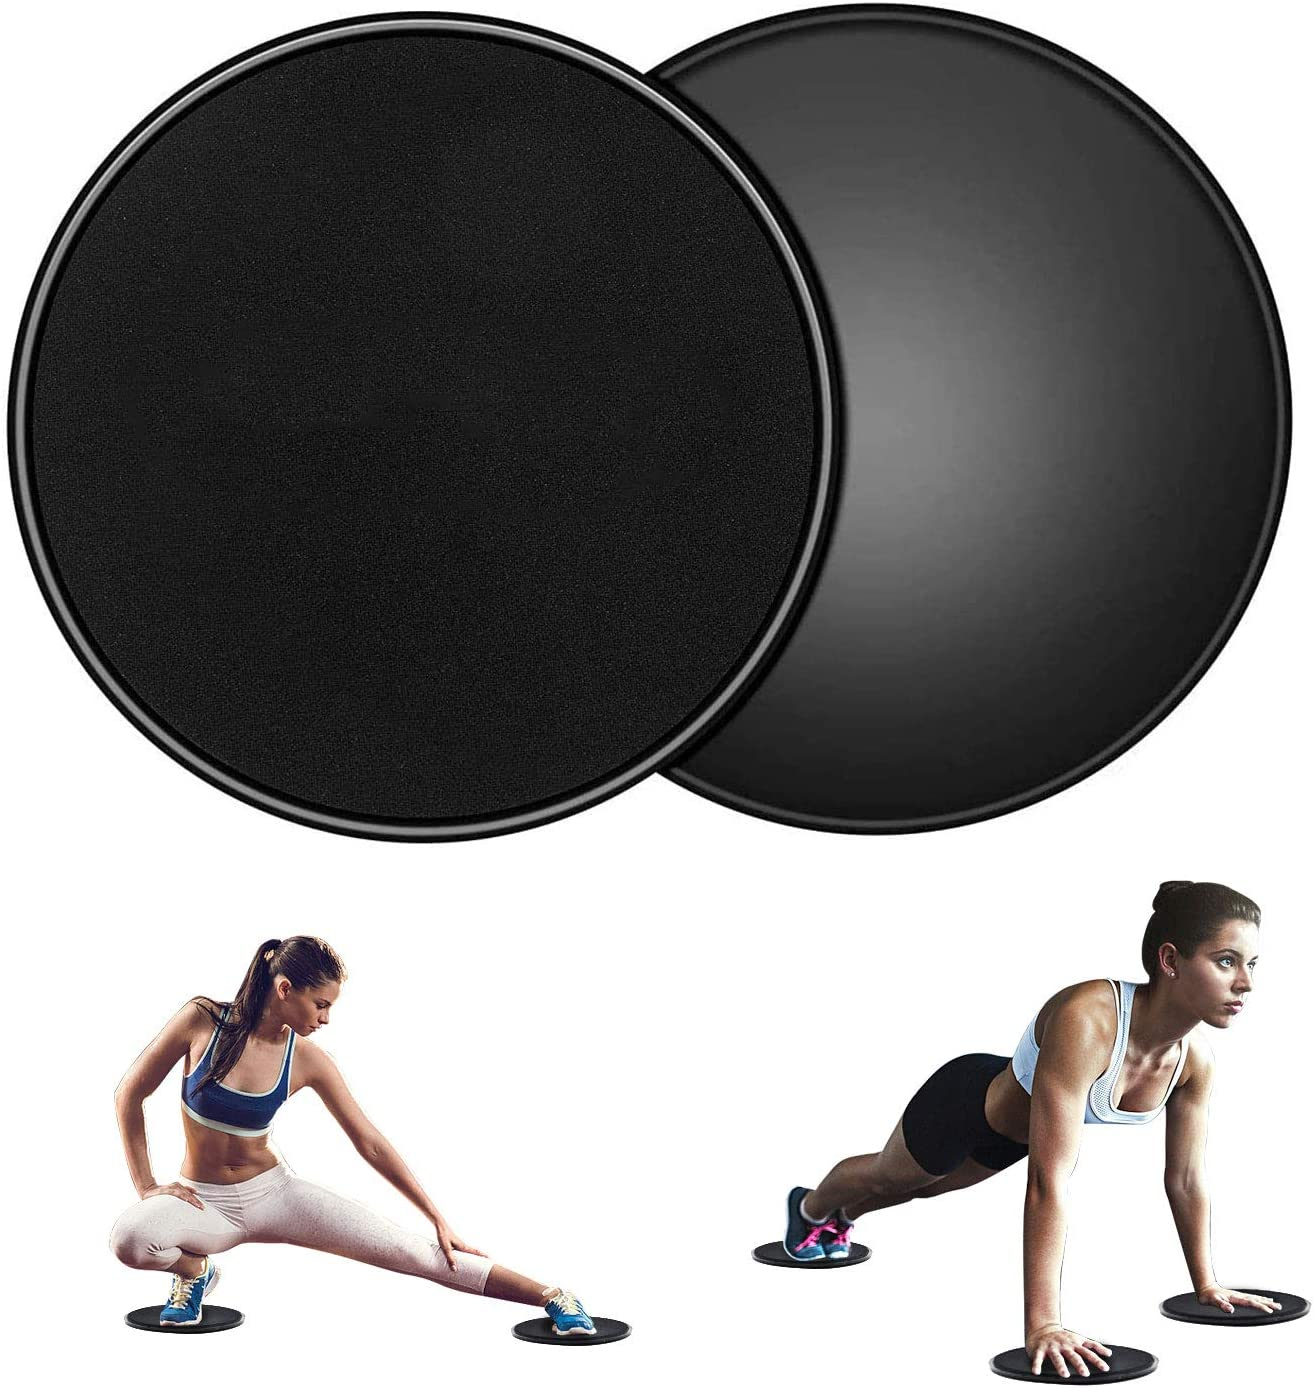 2 Pack Dual Sided Smooth Glider Discs Fitness Equipment for Abdominal and Core Workouts Sposuit Exercise Core Sliders Set for Ab Workout